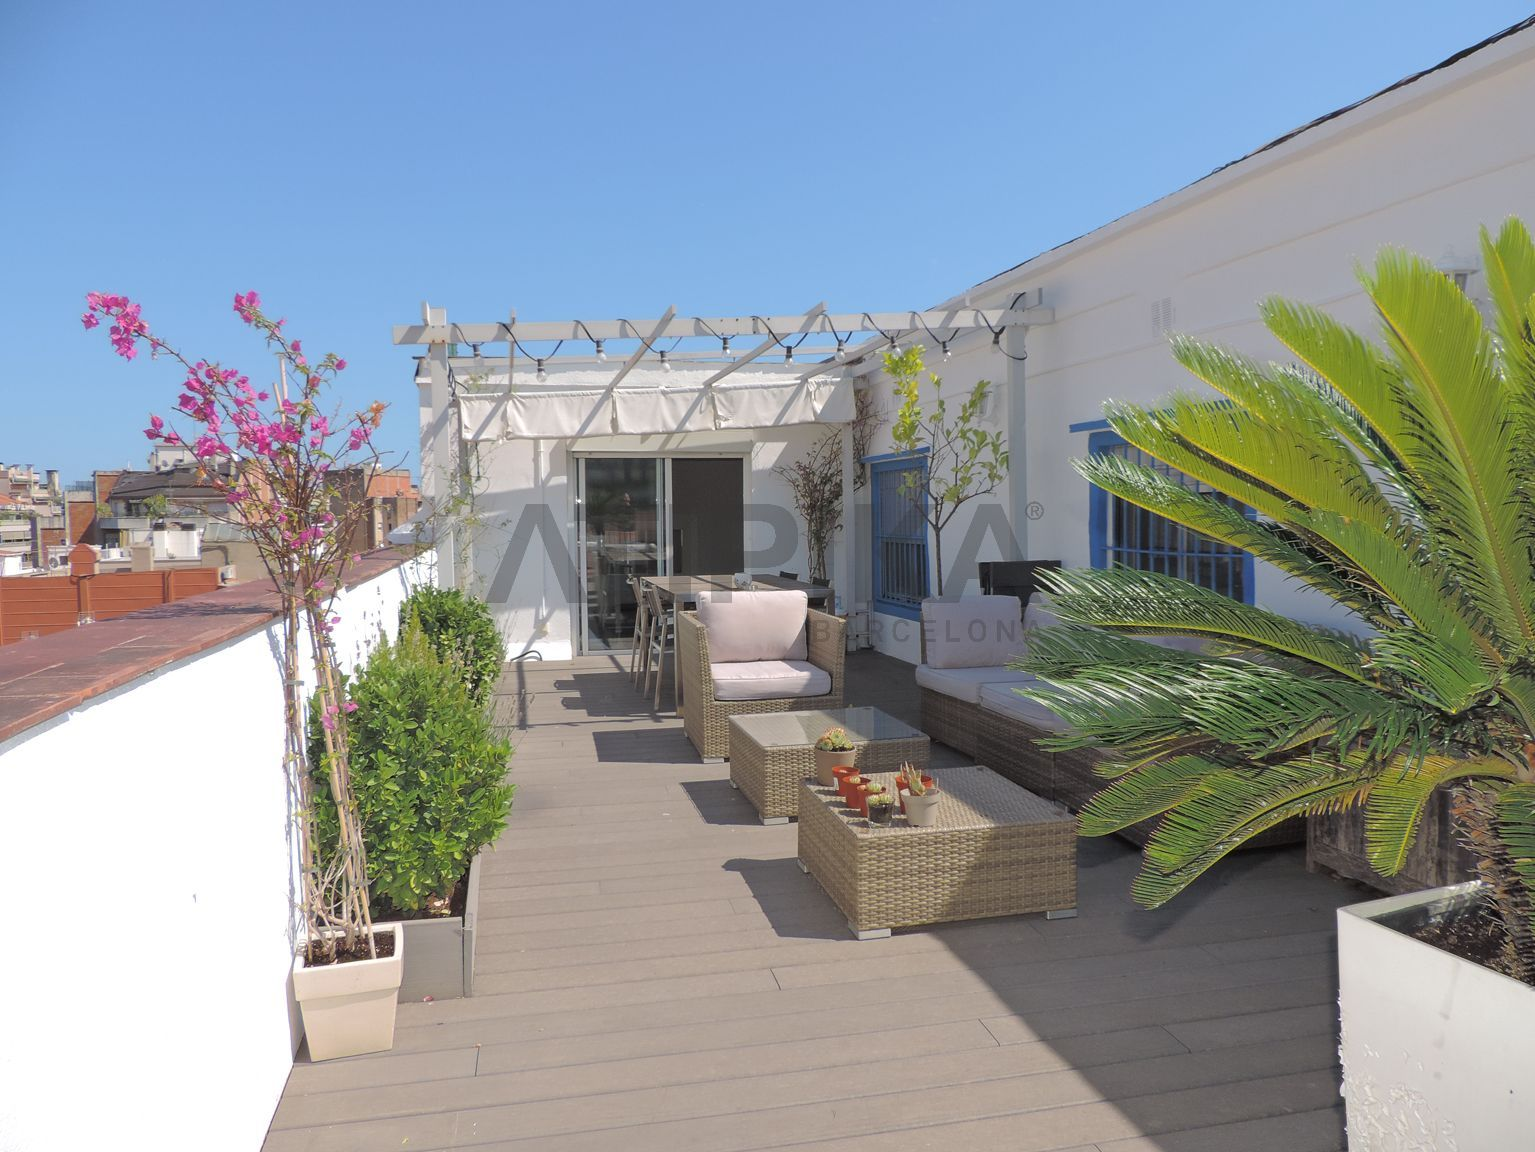 Ref.11878 Penthouse with beautiful views to the 'Sagrada